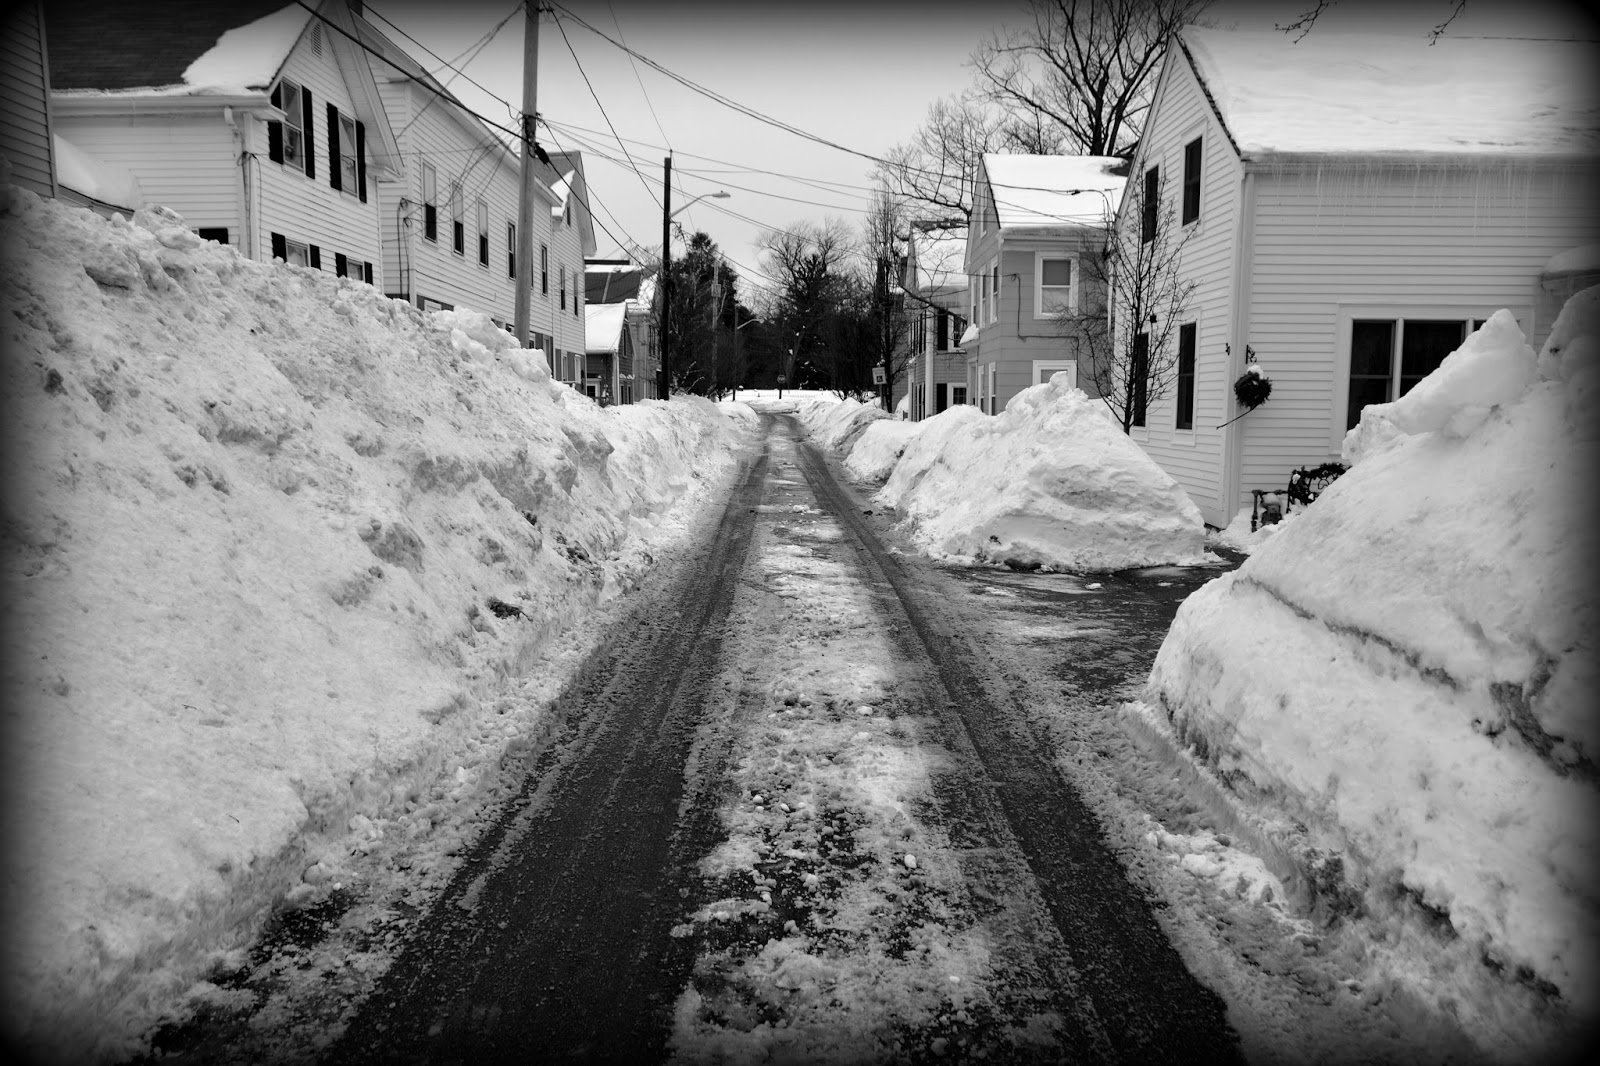 Snowbanks, Winter 2015, Salem, Massachusetts, snow, blizzards, storms